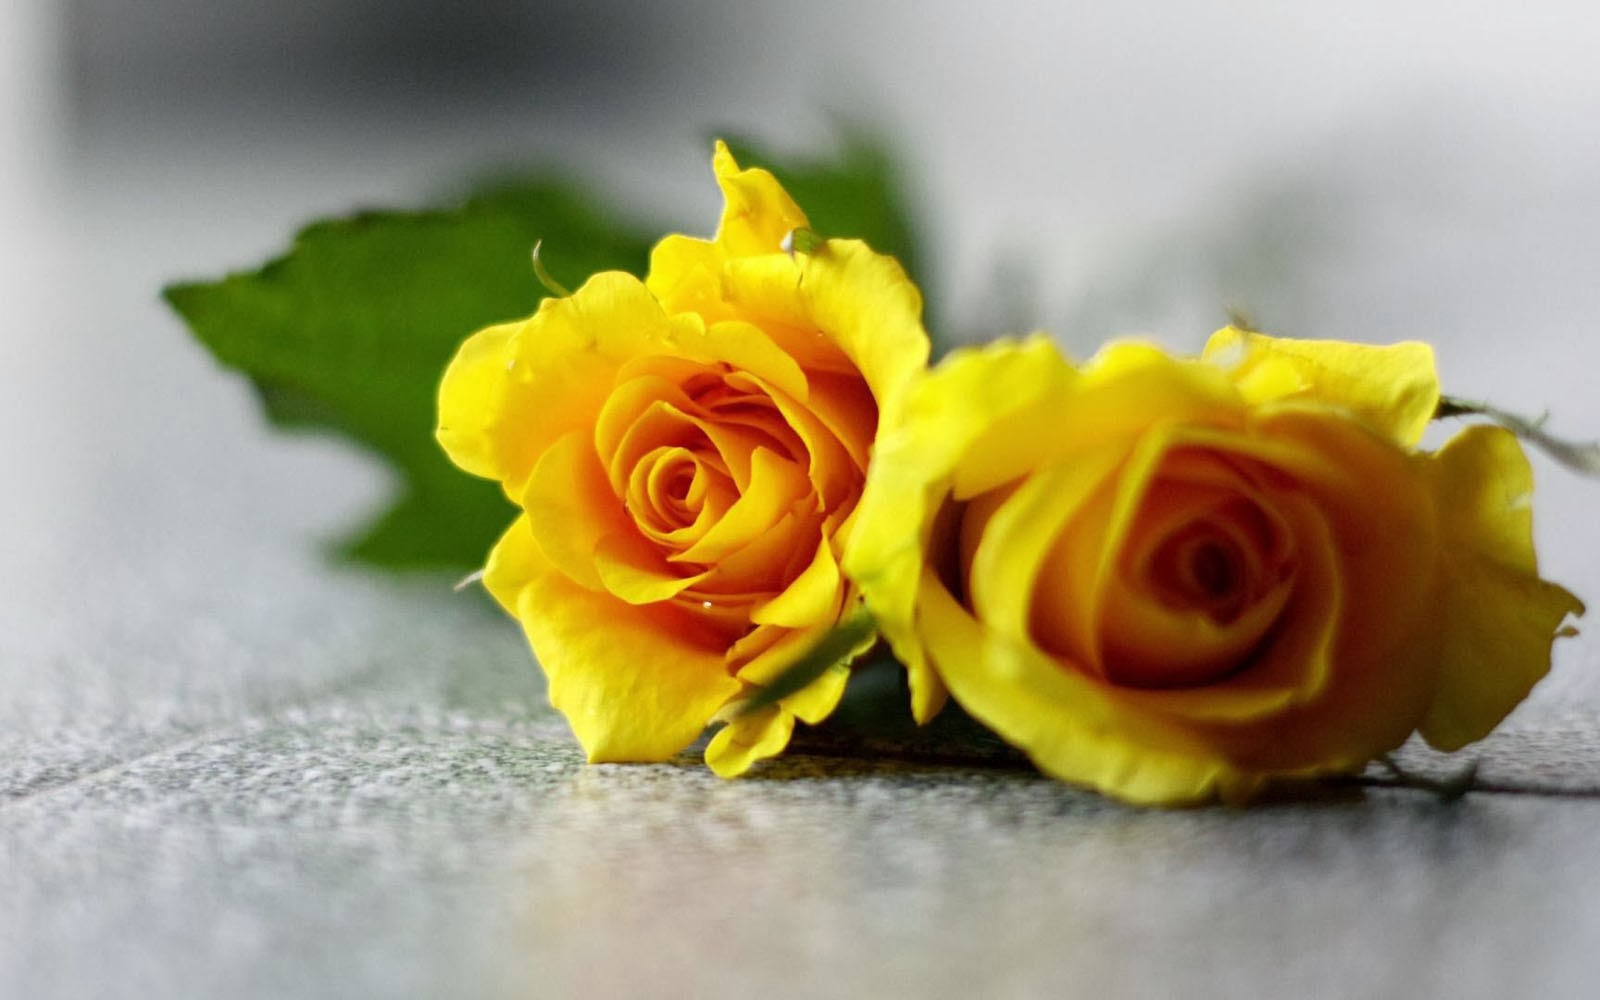 Free Download 3d Wallpapers For Windows 7 Desktop Wallpapers Yellow Rose Wallpapers